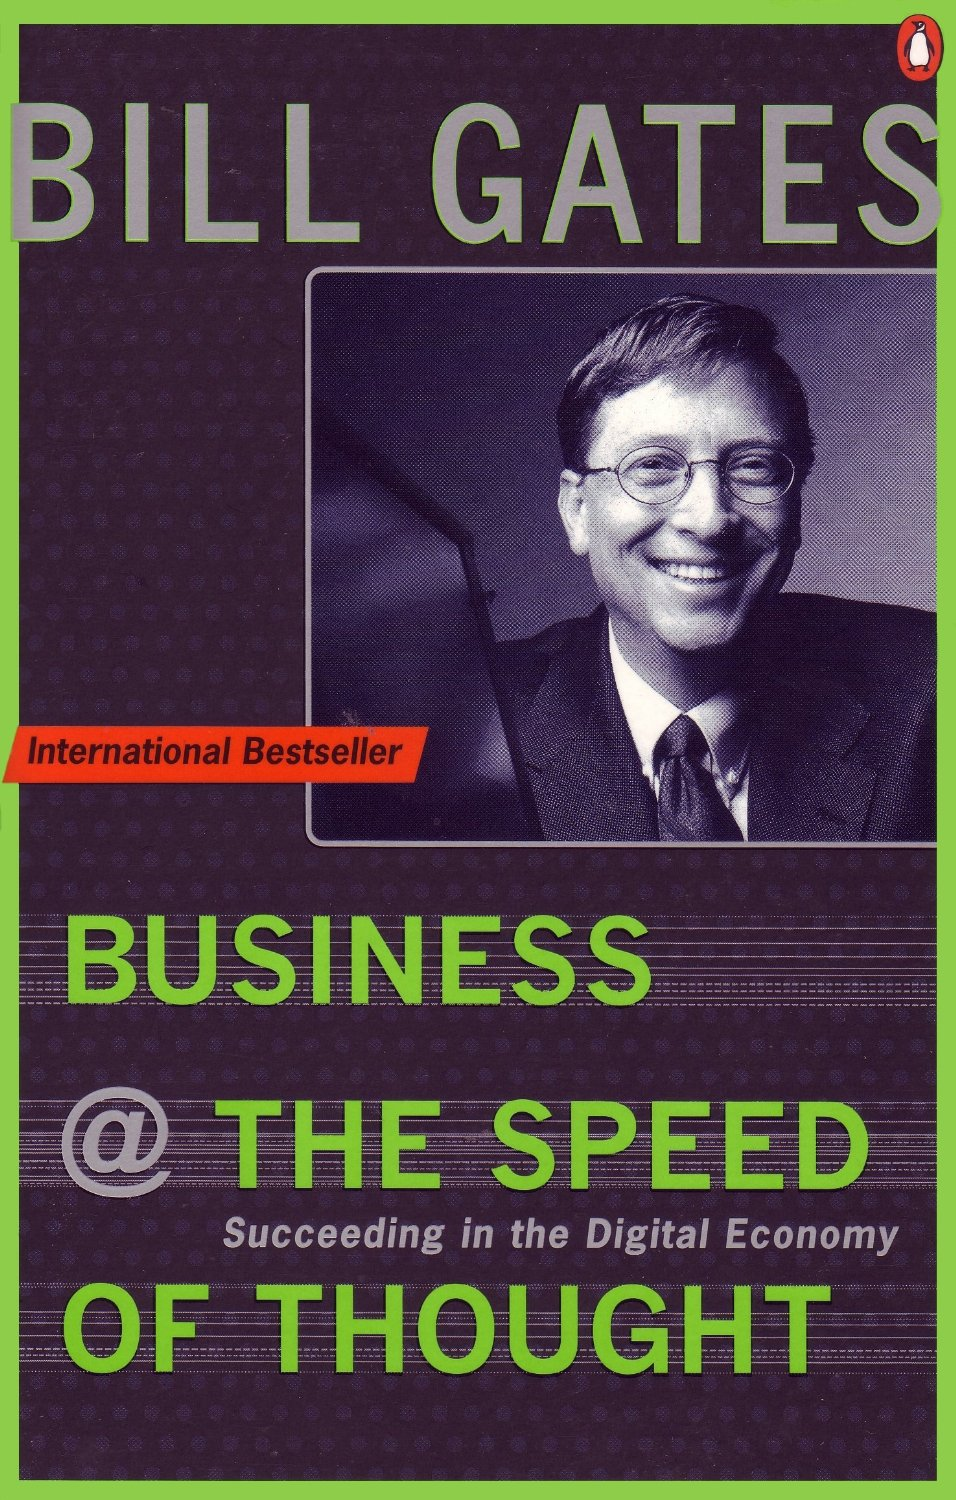 business-at-the-speed-of-thought-bill-gates